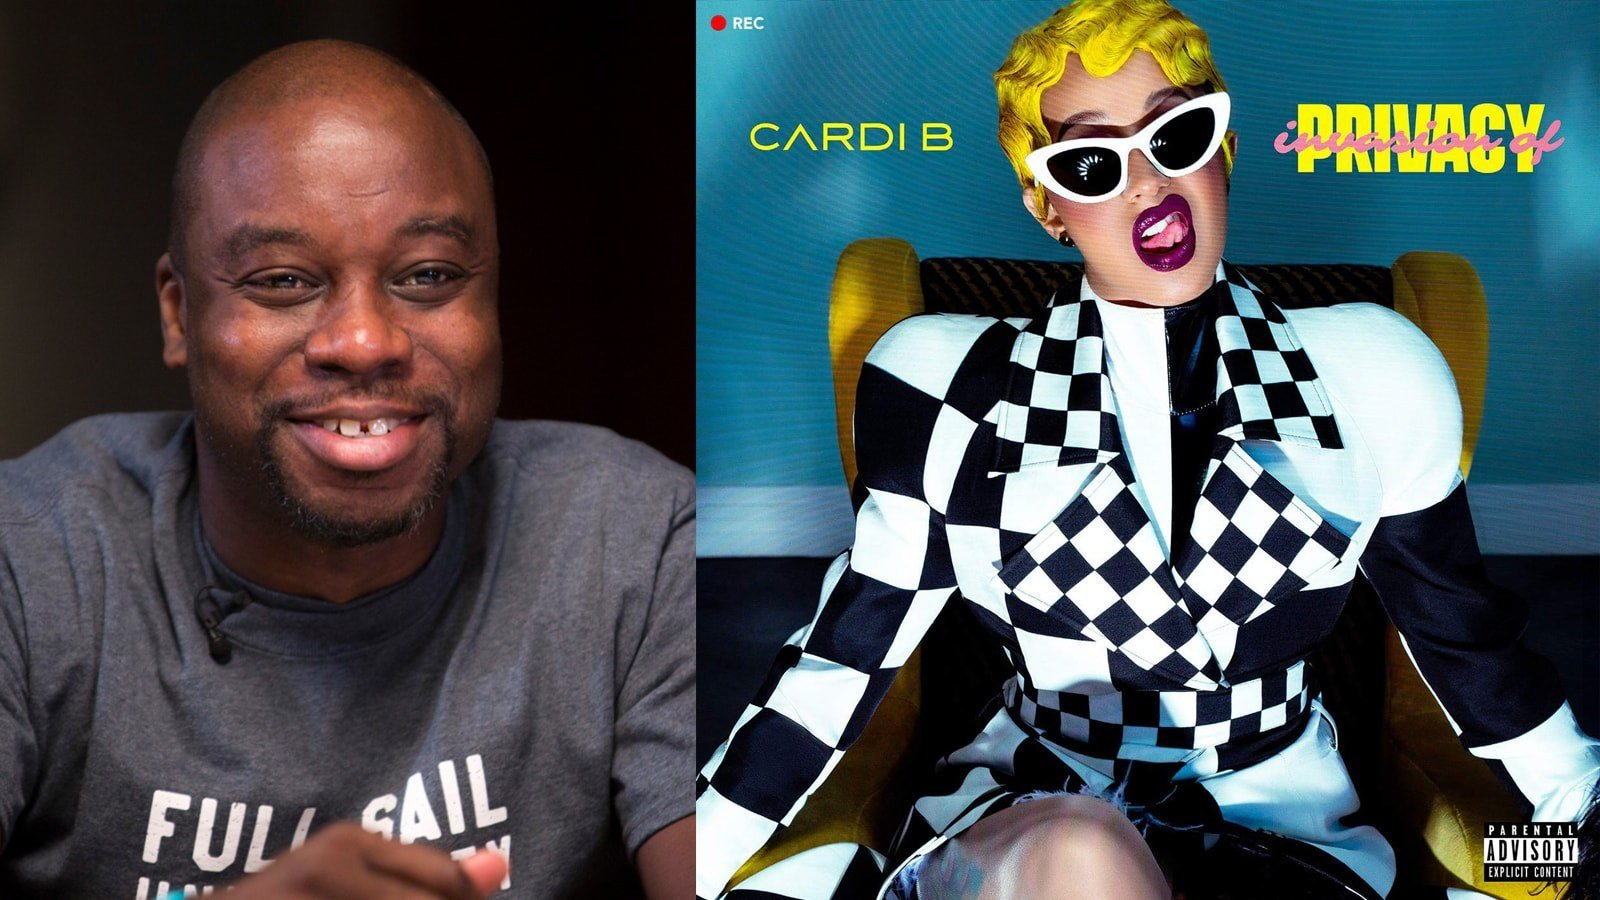 When Leslie B Met Cardi B: Full Sail Grads Work on 'Invasion of Privacy' - Hero image